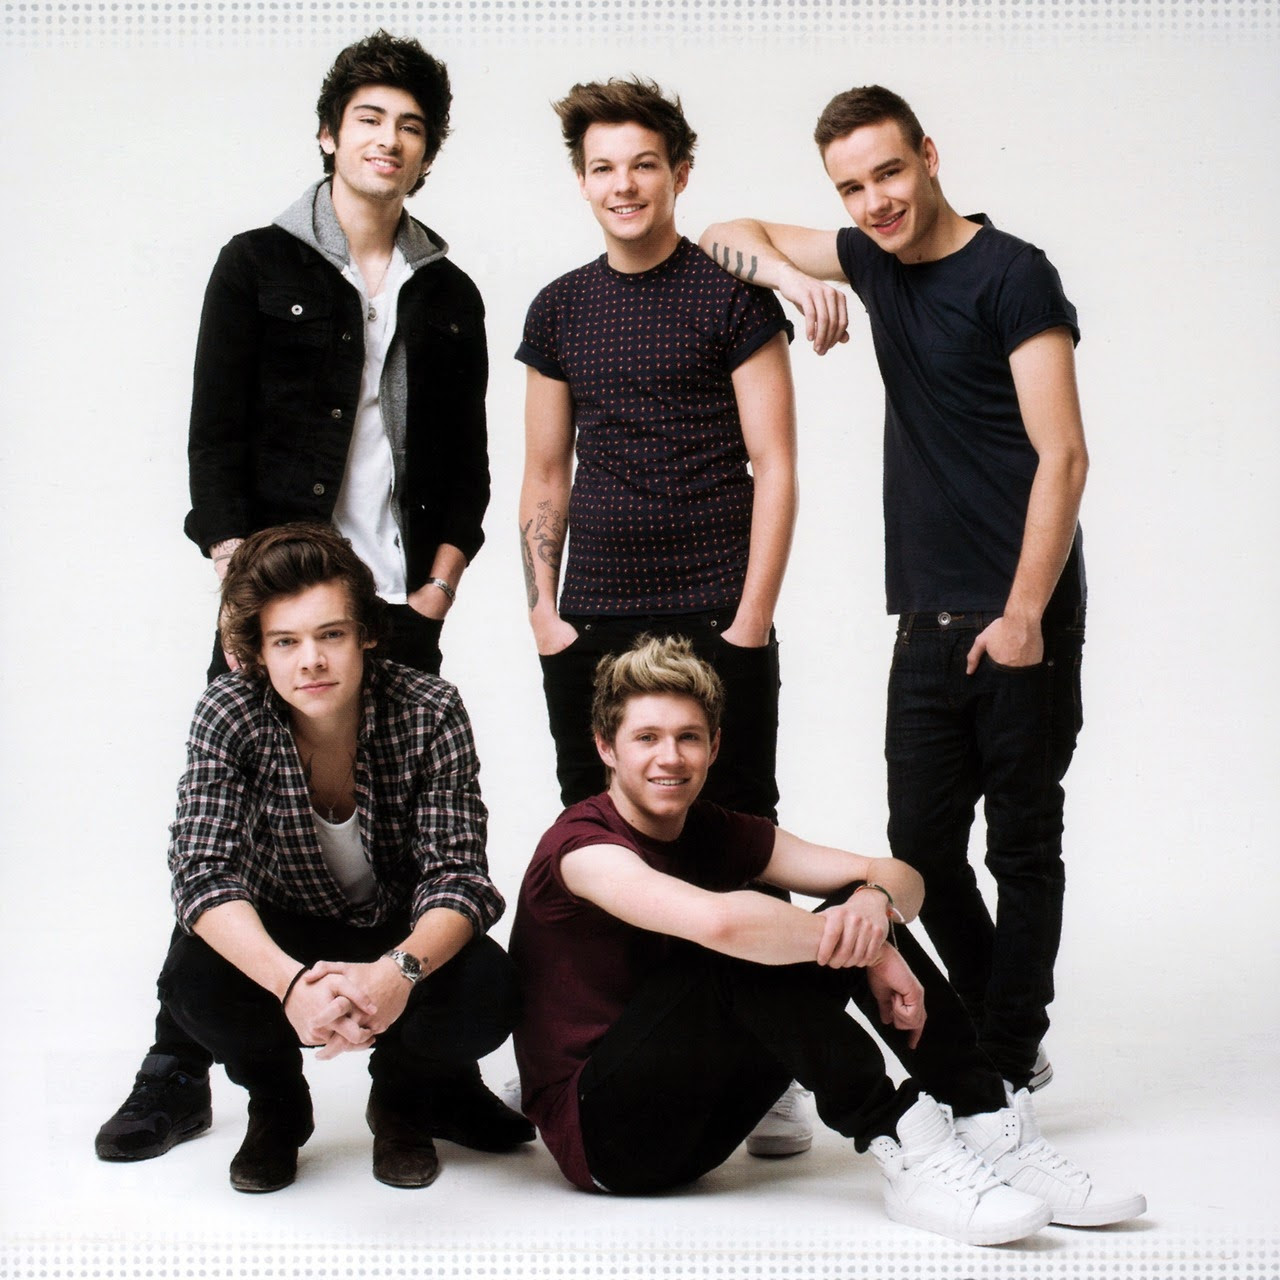 100 Reviews One Direction 2015 On Angazaproject Com